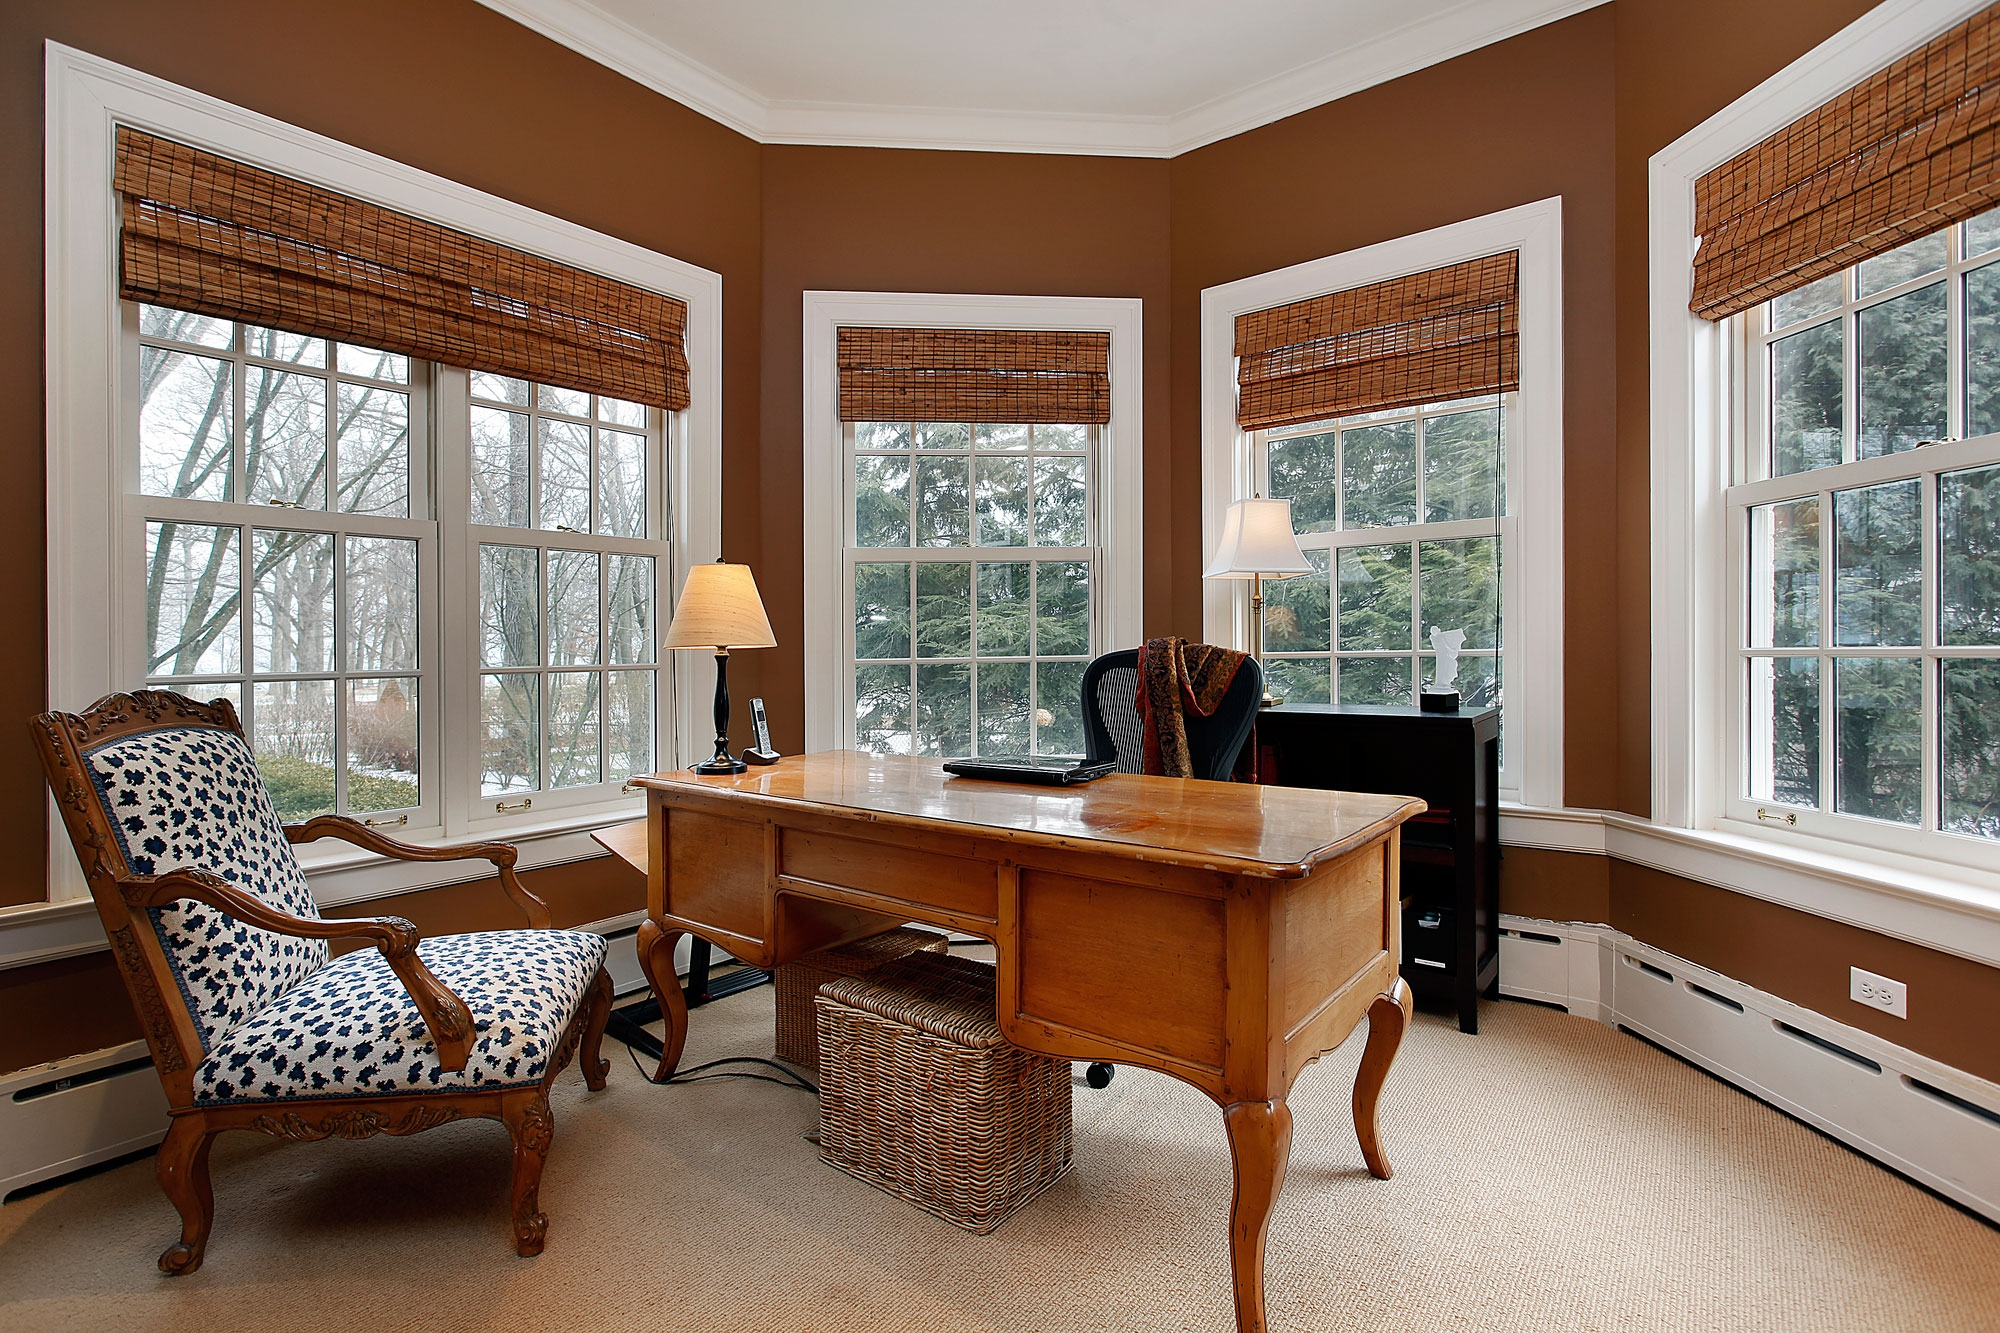 7 Inspirations for Your Home Office Design